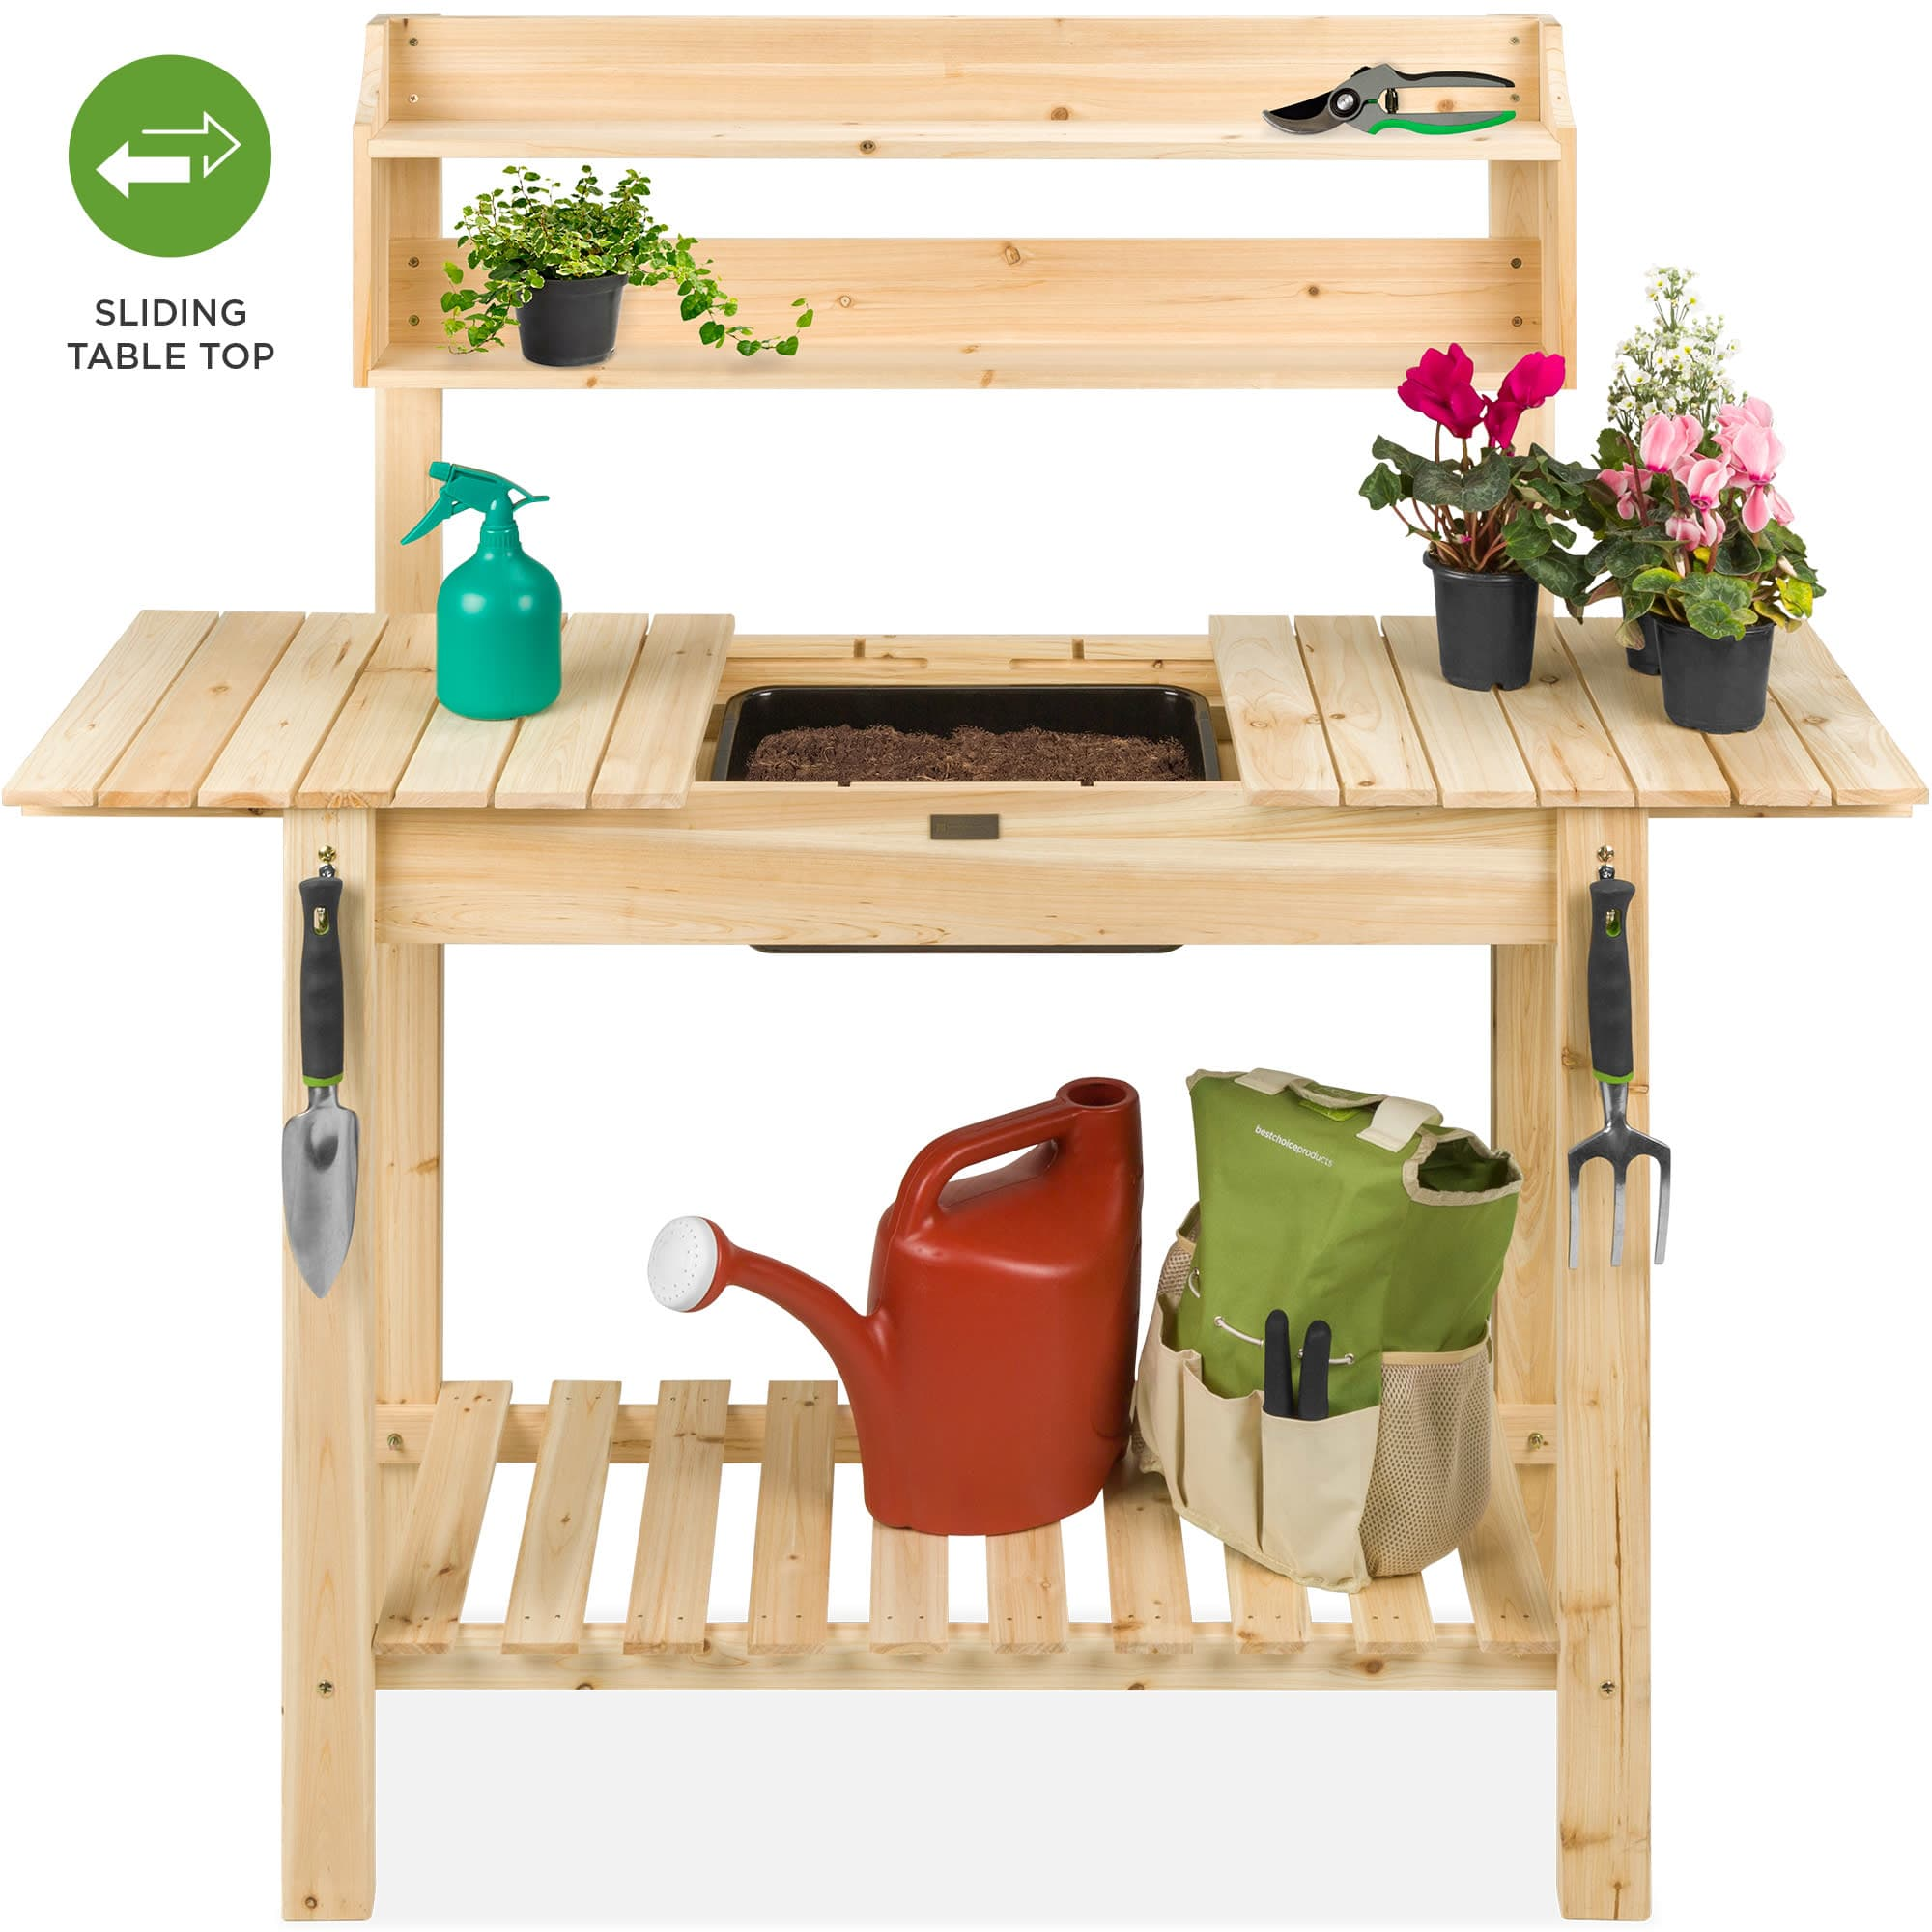 Best Choice Products Potting Bench w/ Sliding Tabletop